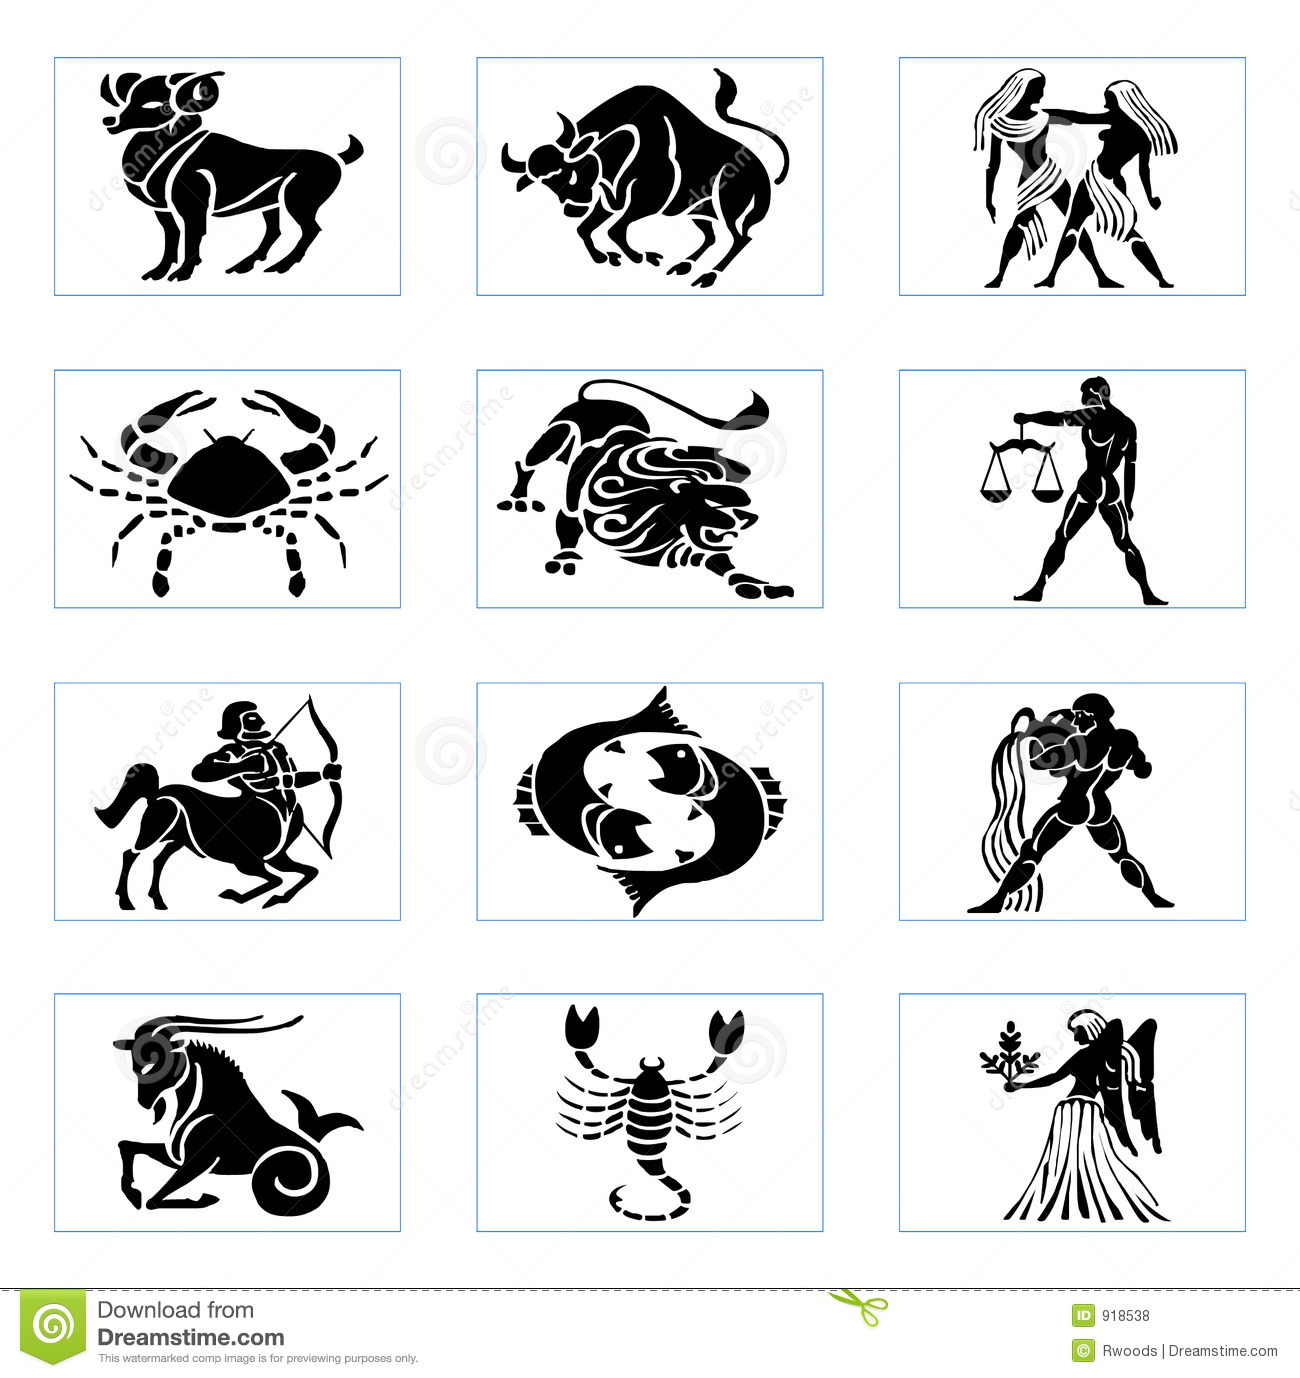 Zodiac clipart  zodiac Free Royalty Stock